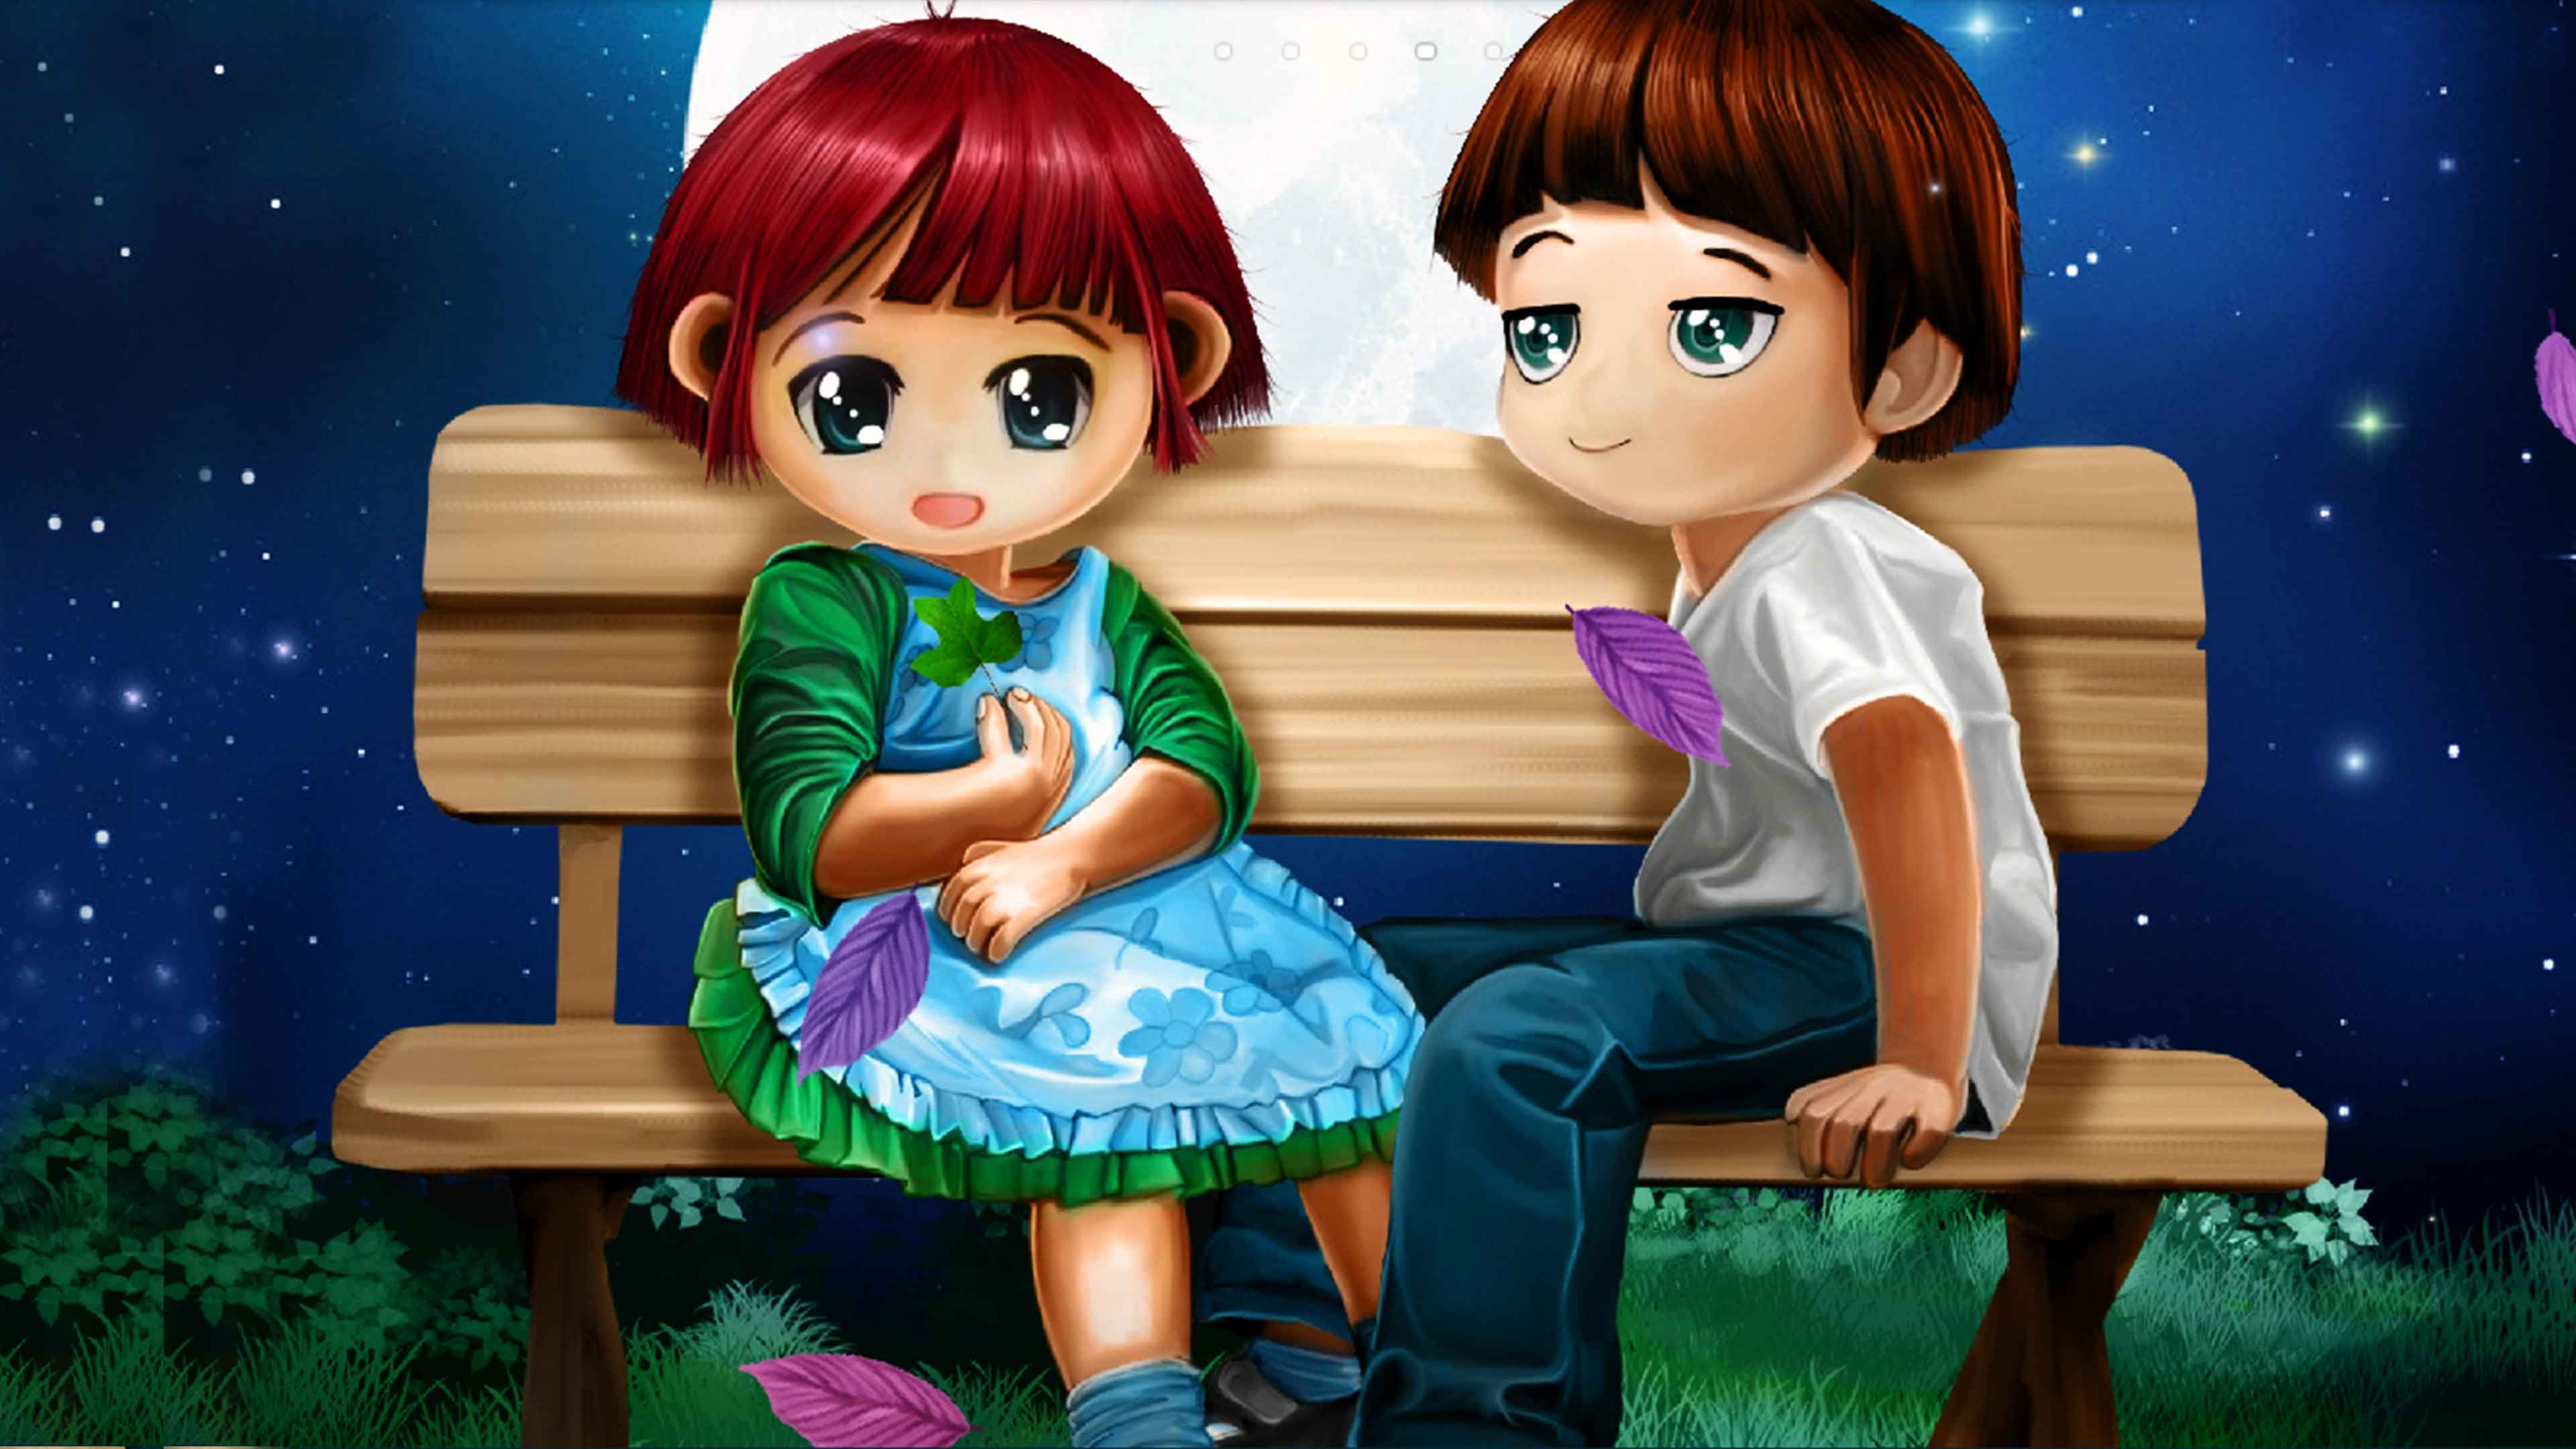 Wallpaper download cute lovers - 3d Love Couple Cartoon Wallpapers Download 3d Wallpaper Hd